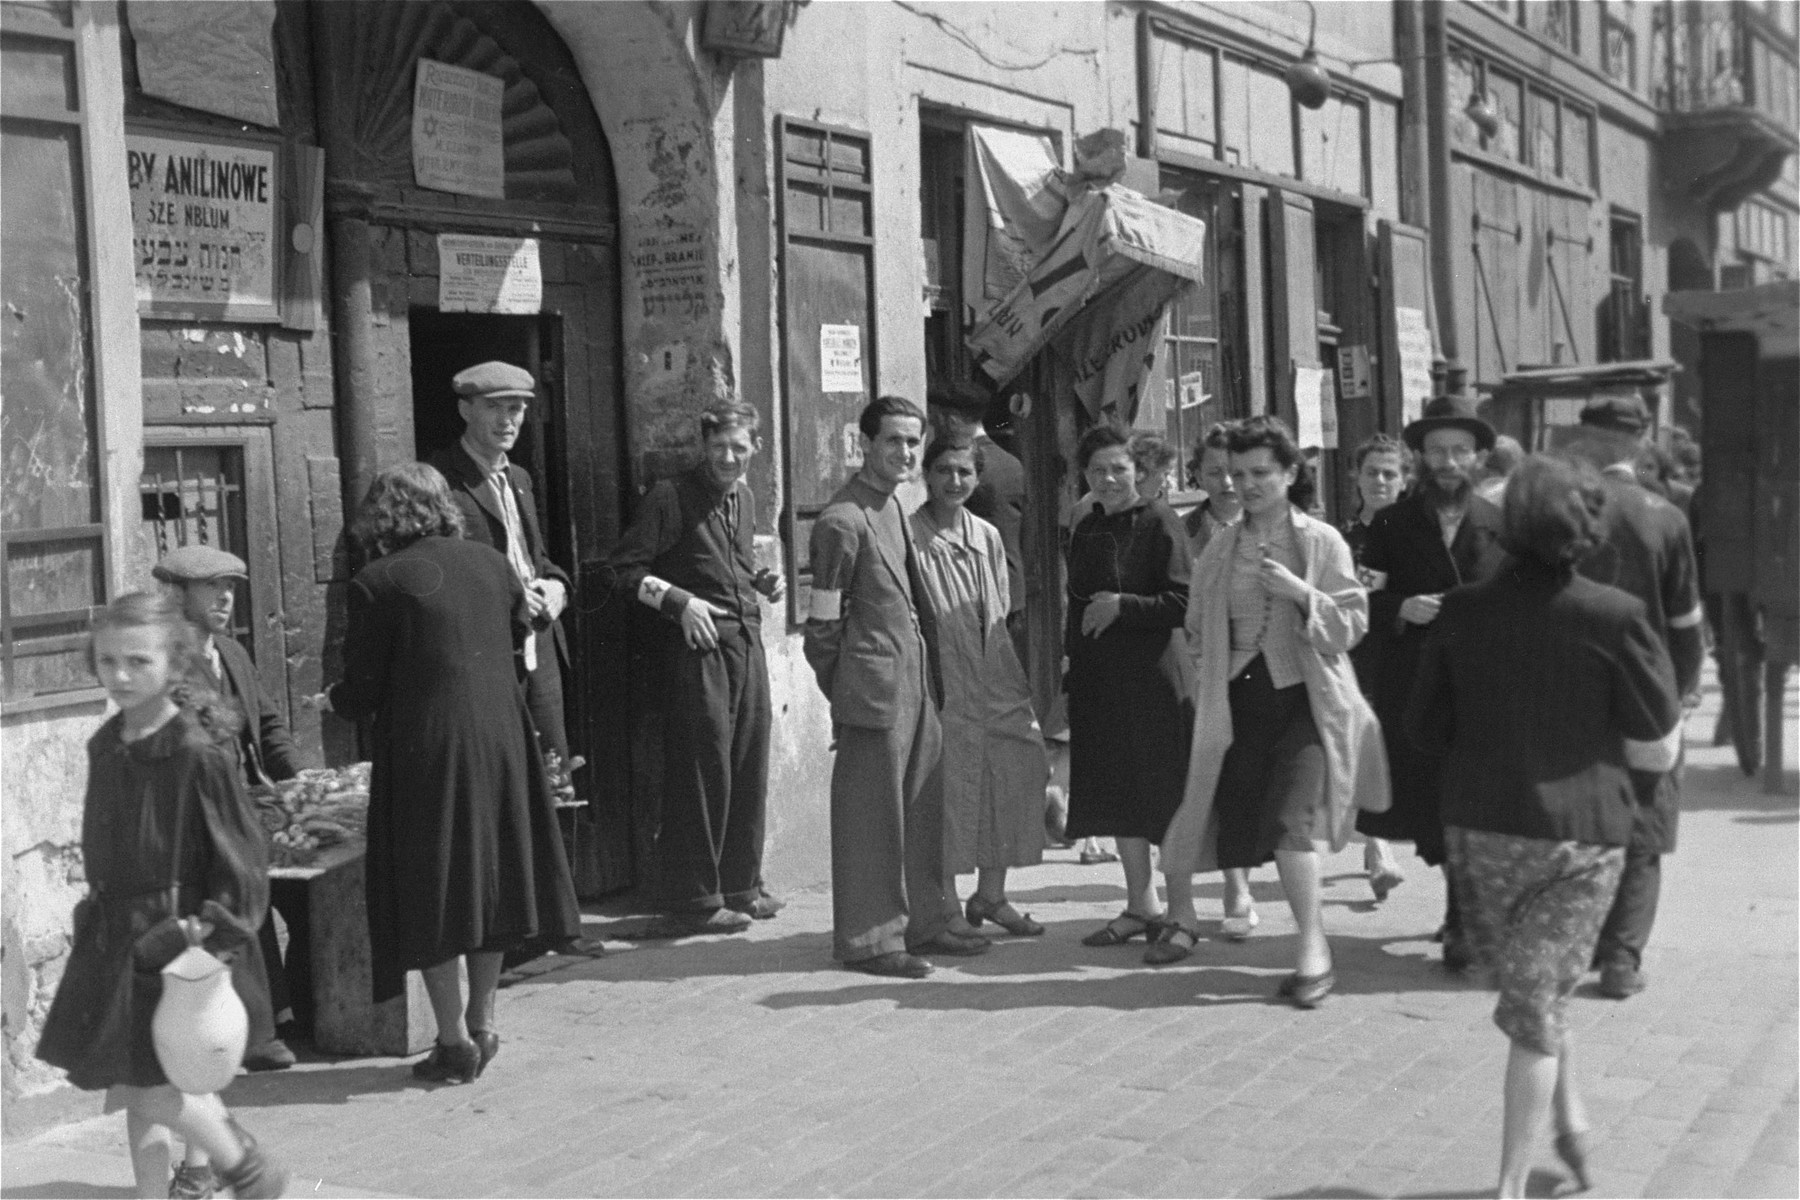 Jews on the street in the Warsaw ghetto.